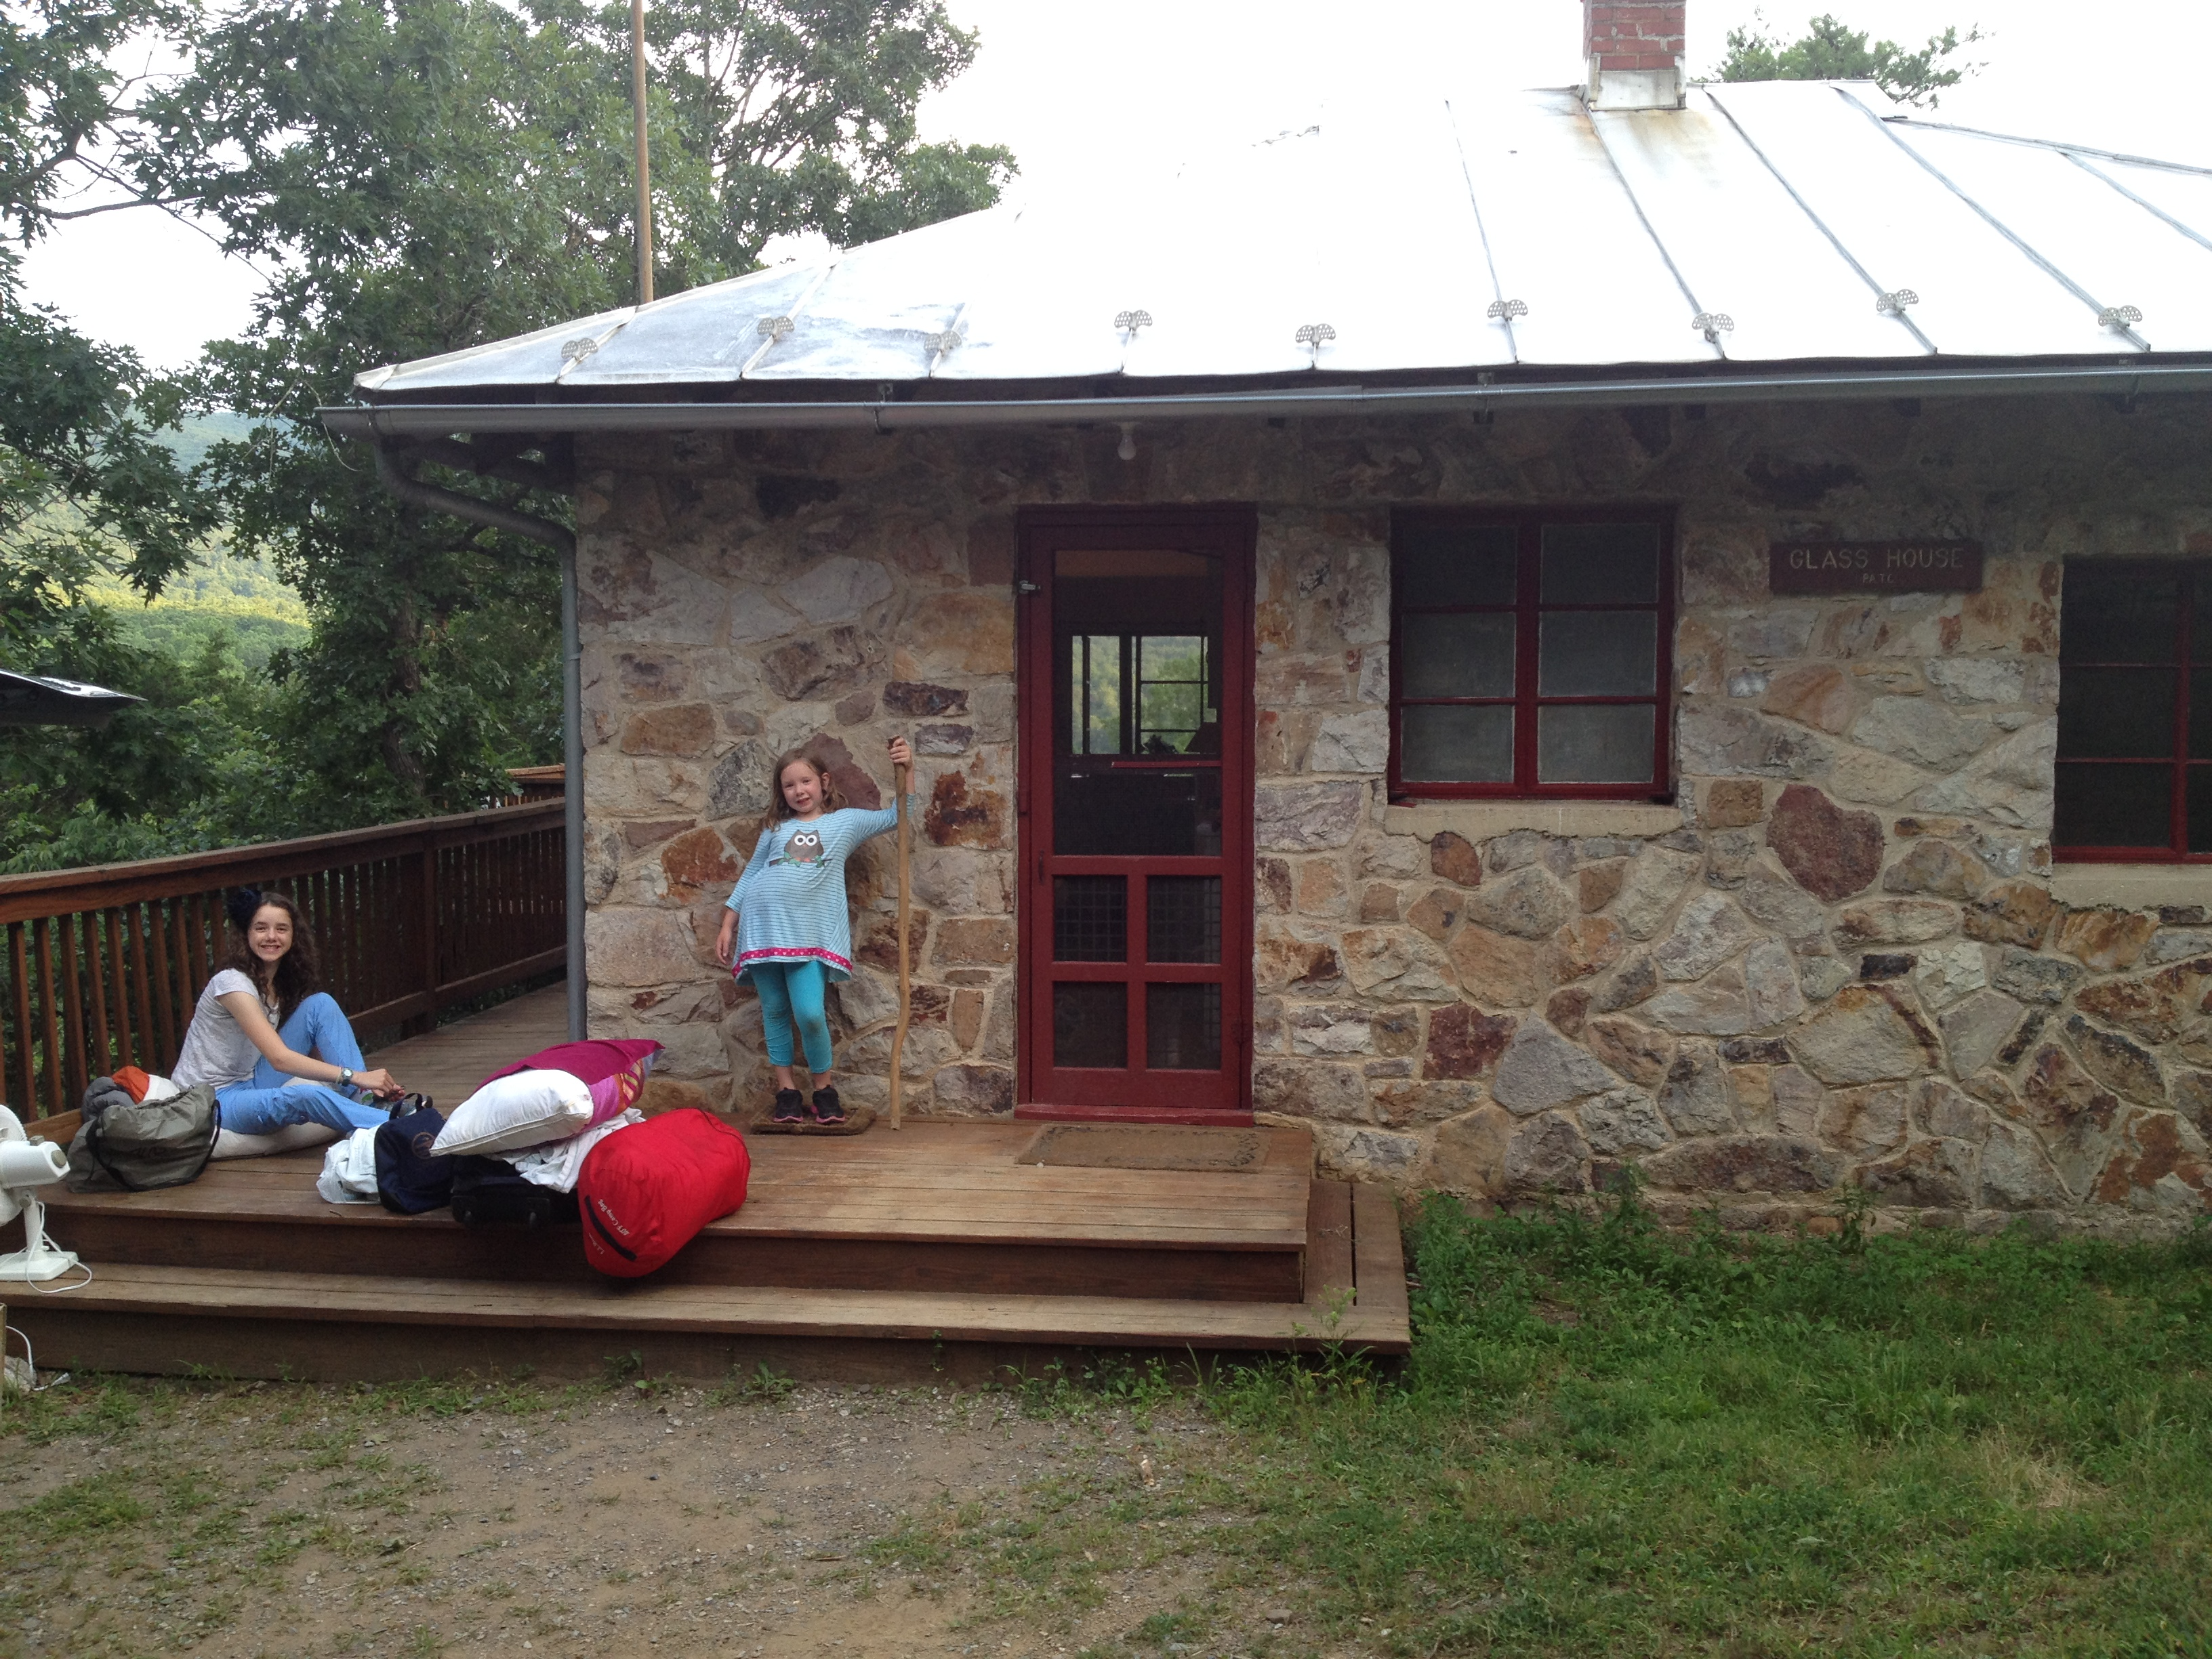 Glass House Patc Cabin : Adventures archives onfindinghappy